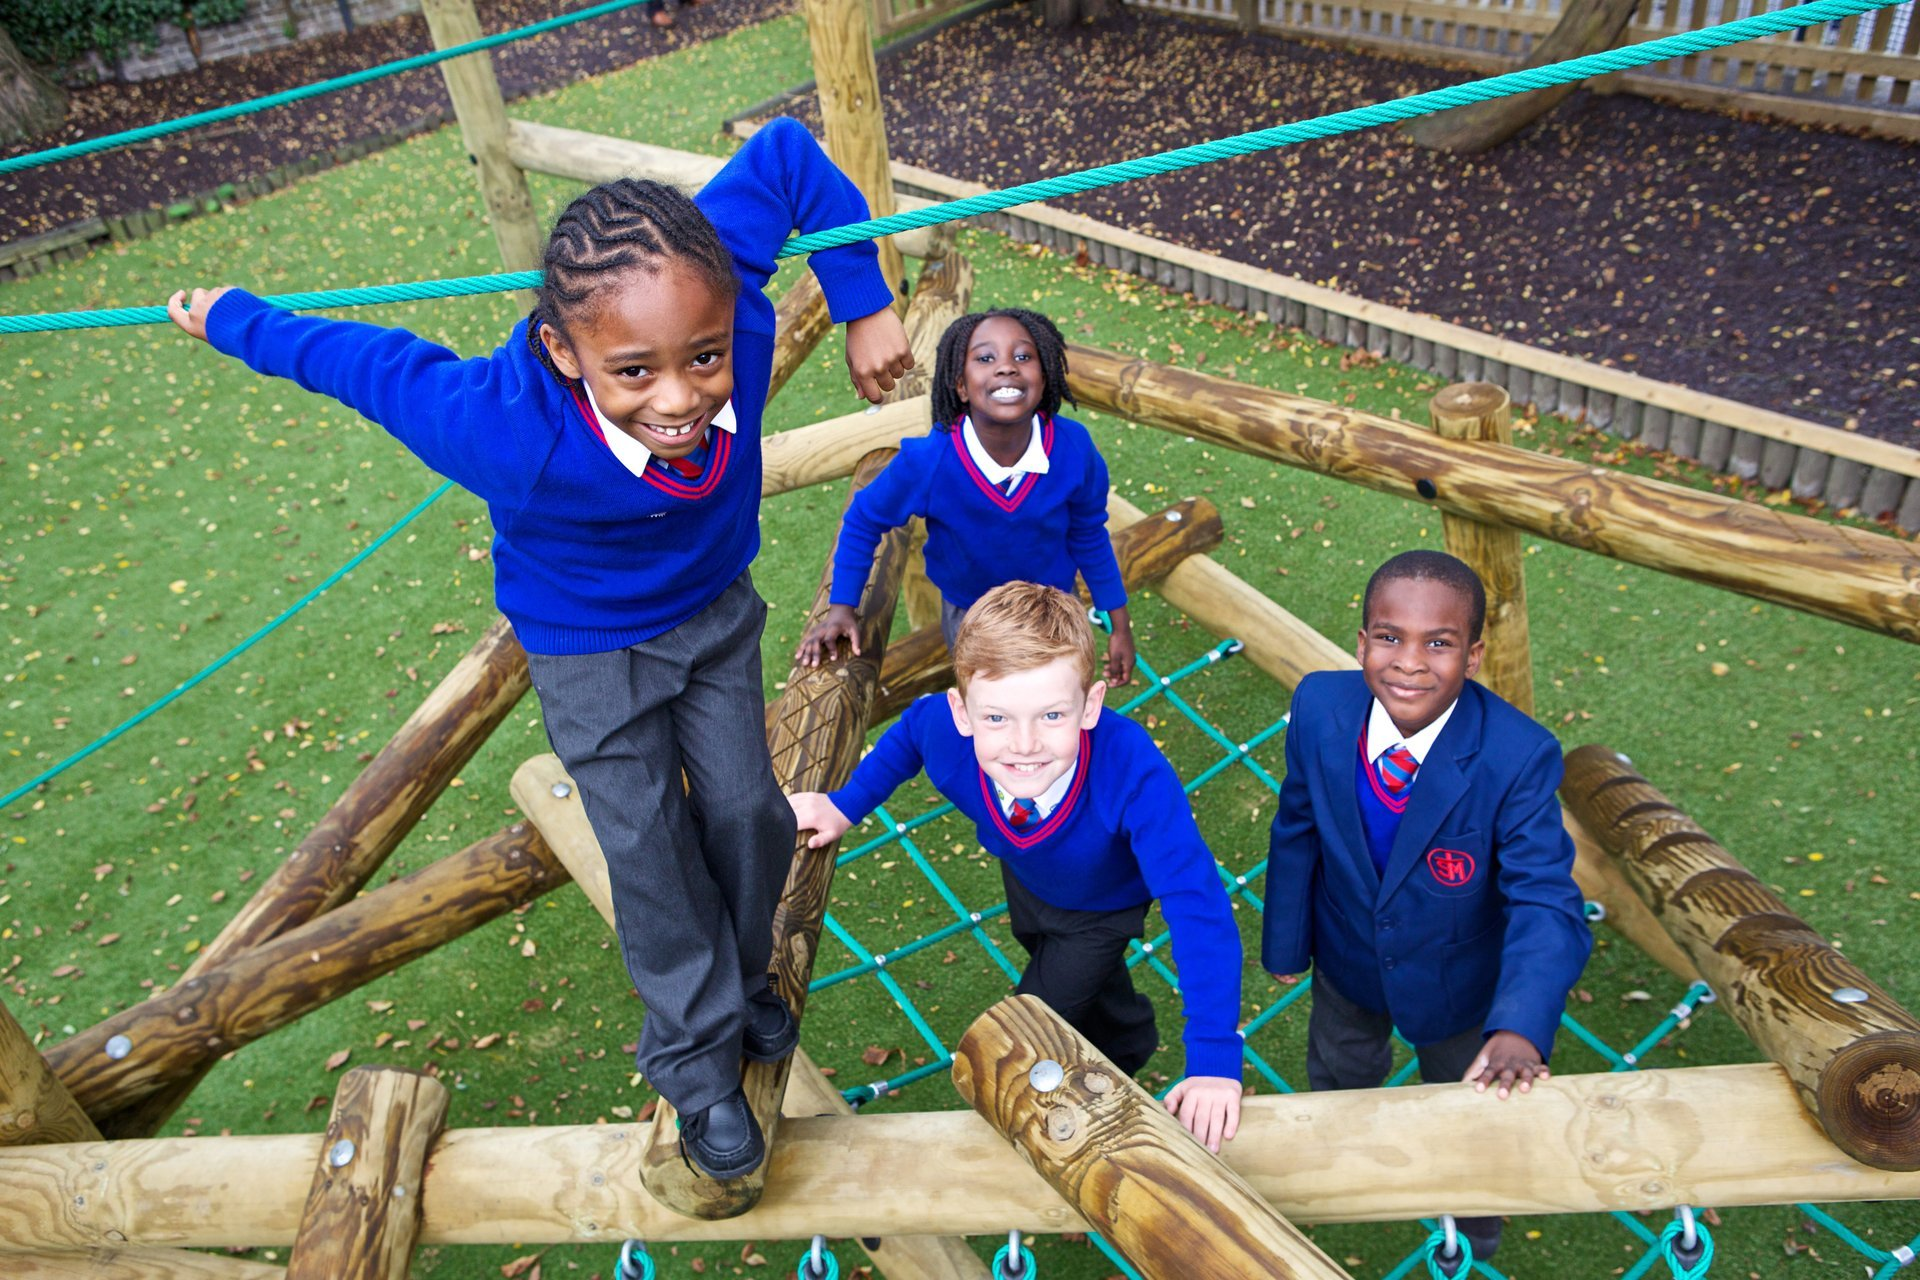 School playgrounds to combat childhood obesity - Playcubed Playgrounds